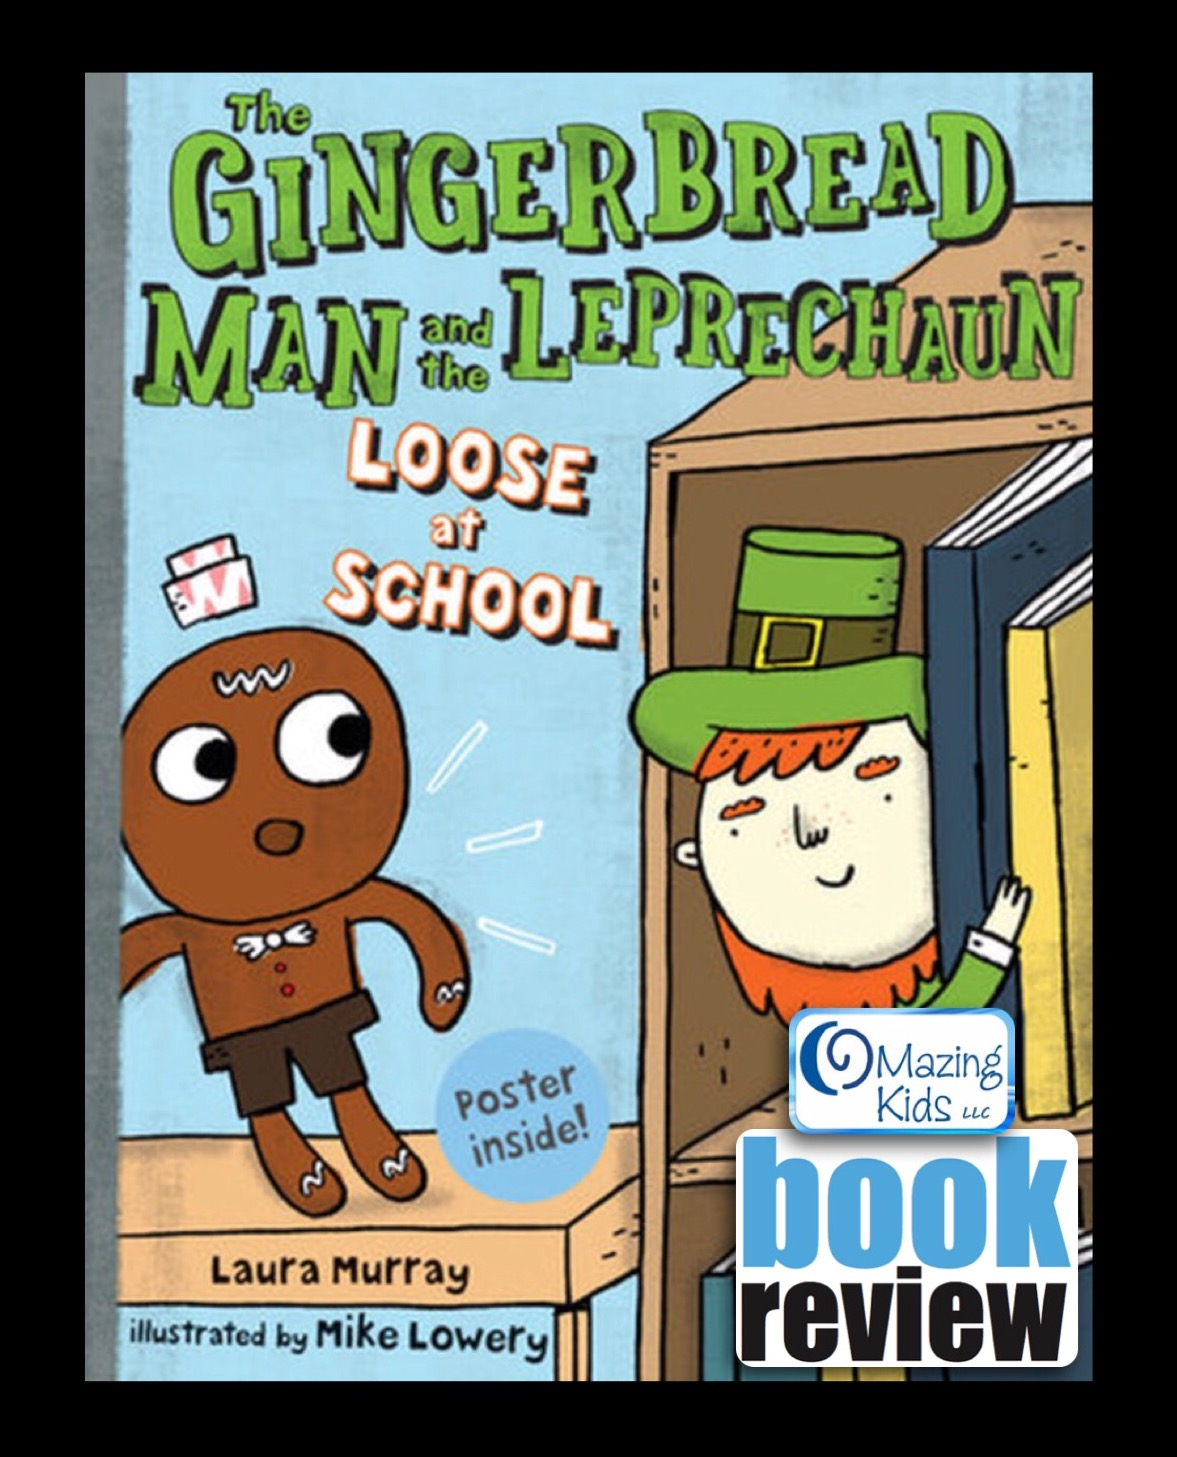 book review u201cthe gingerbread man and the leprechaun loose at schoolu201d by laura murray